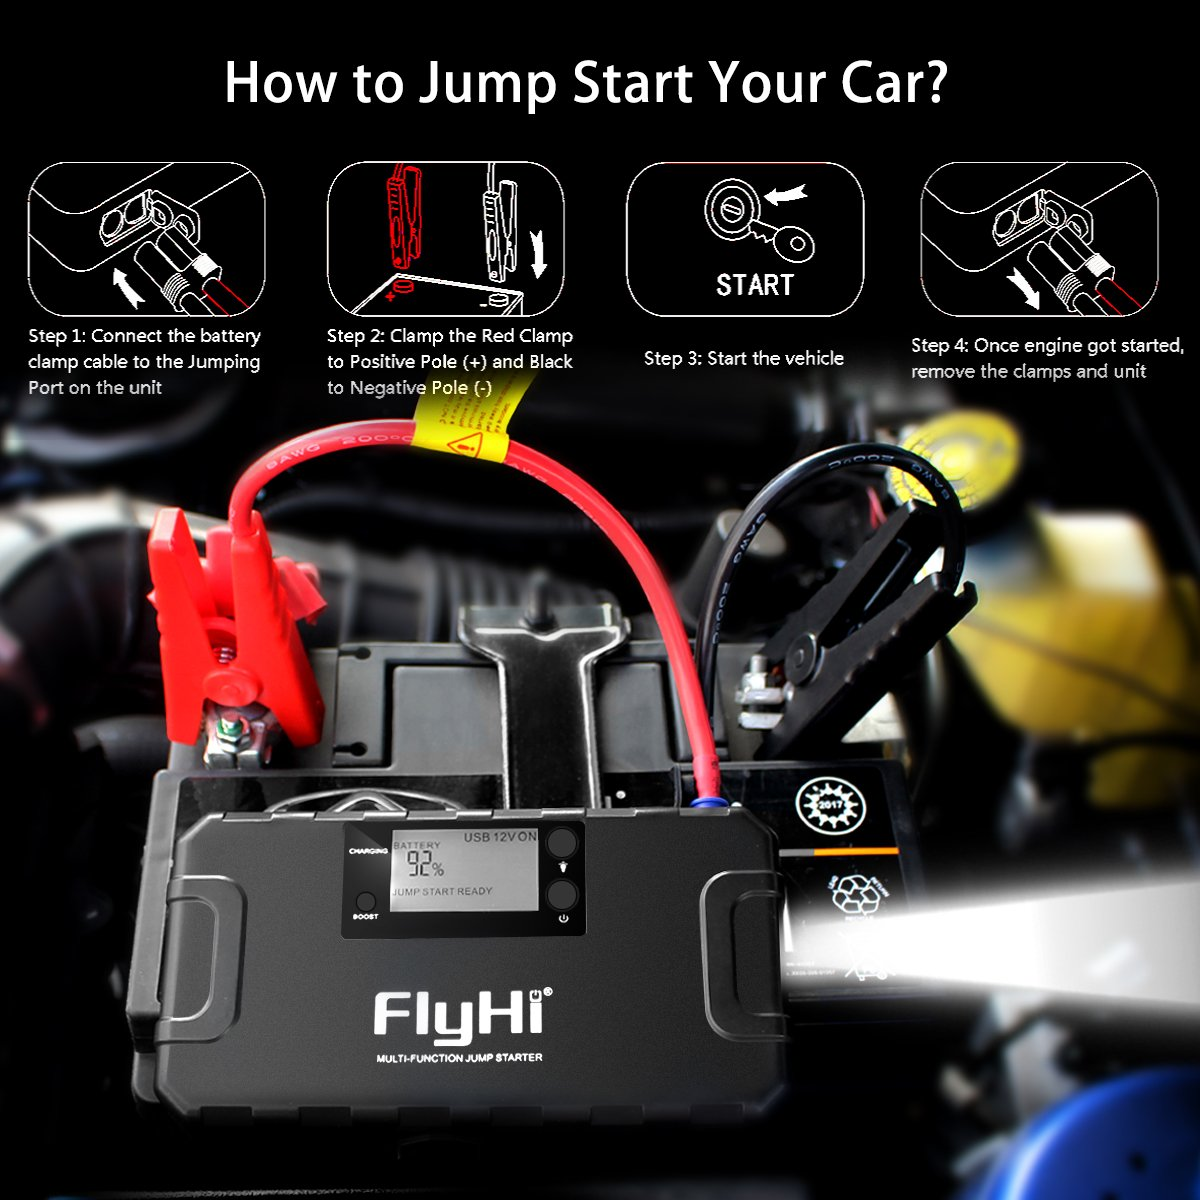 FlyHi 800A 18000mAh Portable Car Jump Starter(Up to 6.5L Gas, 5.2L Diesel Engine) 12V Emergency Battery Booster Pack Built-in Smart Protection, Phone Power Bank(Quick Charge) LED Flashlight by FlyHi (Image #4)